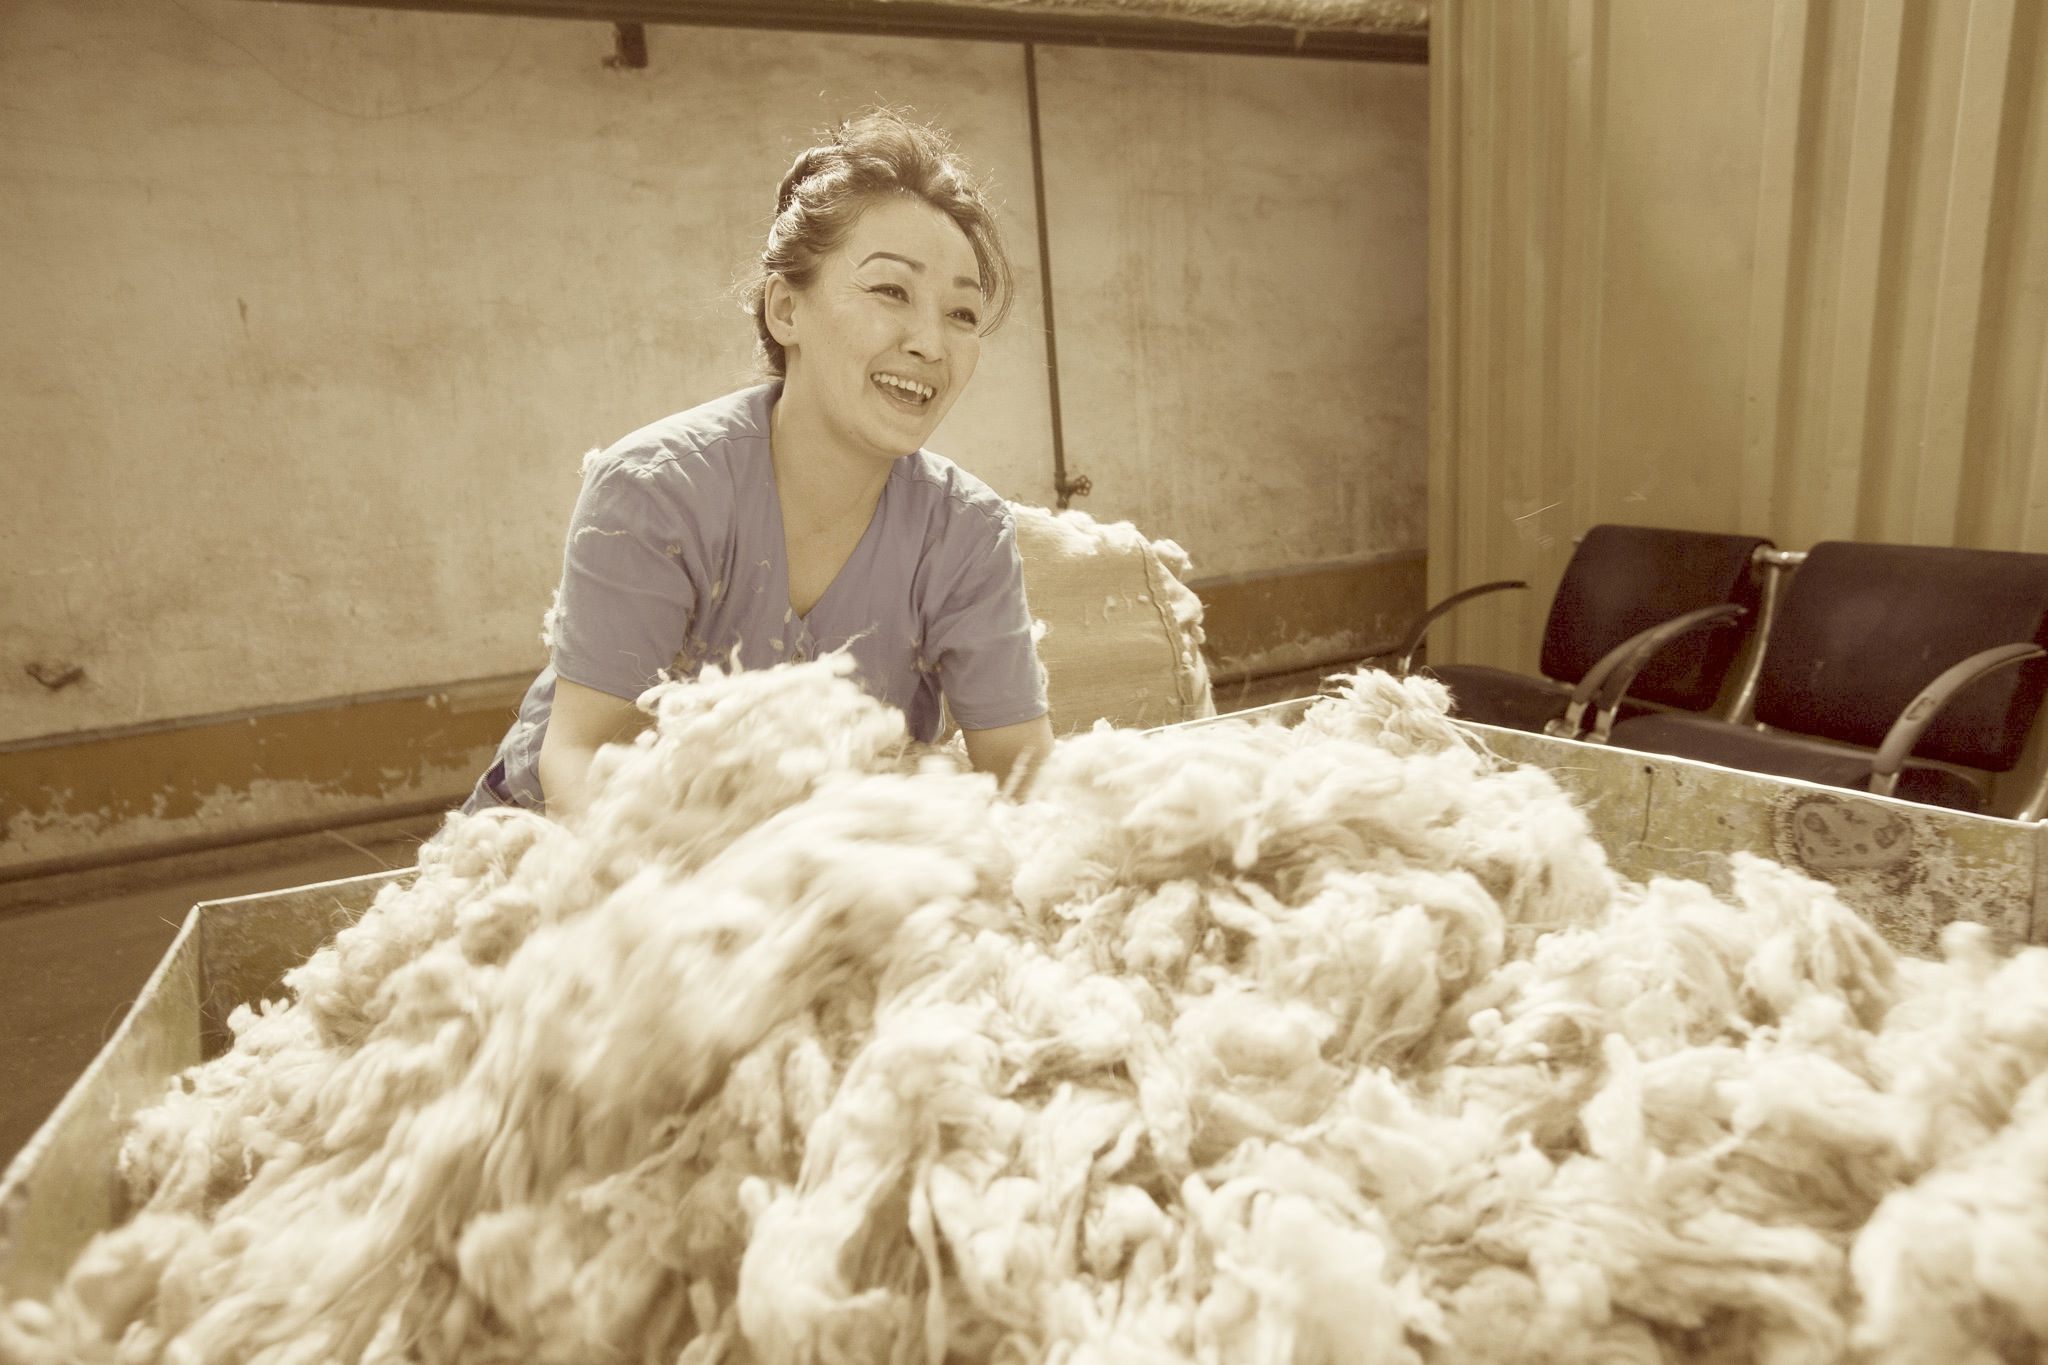 The malted and shaven cashmere goat hair arrives in the capital city of Mongolia, Ulaanbaatar. The lovely Bayarmaa and her colleagues receive the cashmere and prepare it for international distribution.